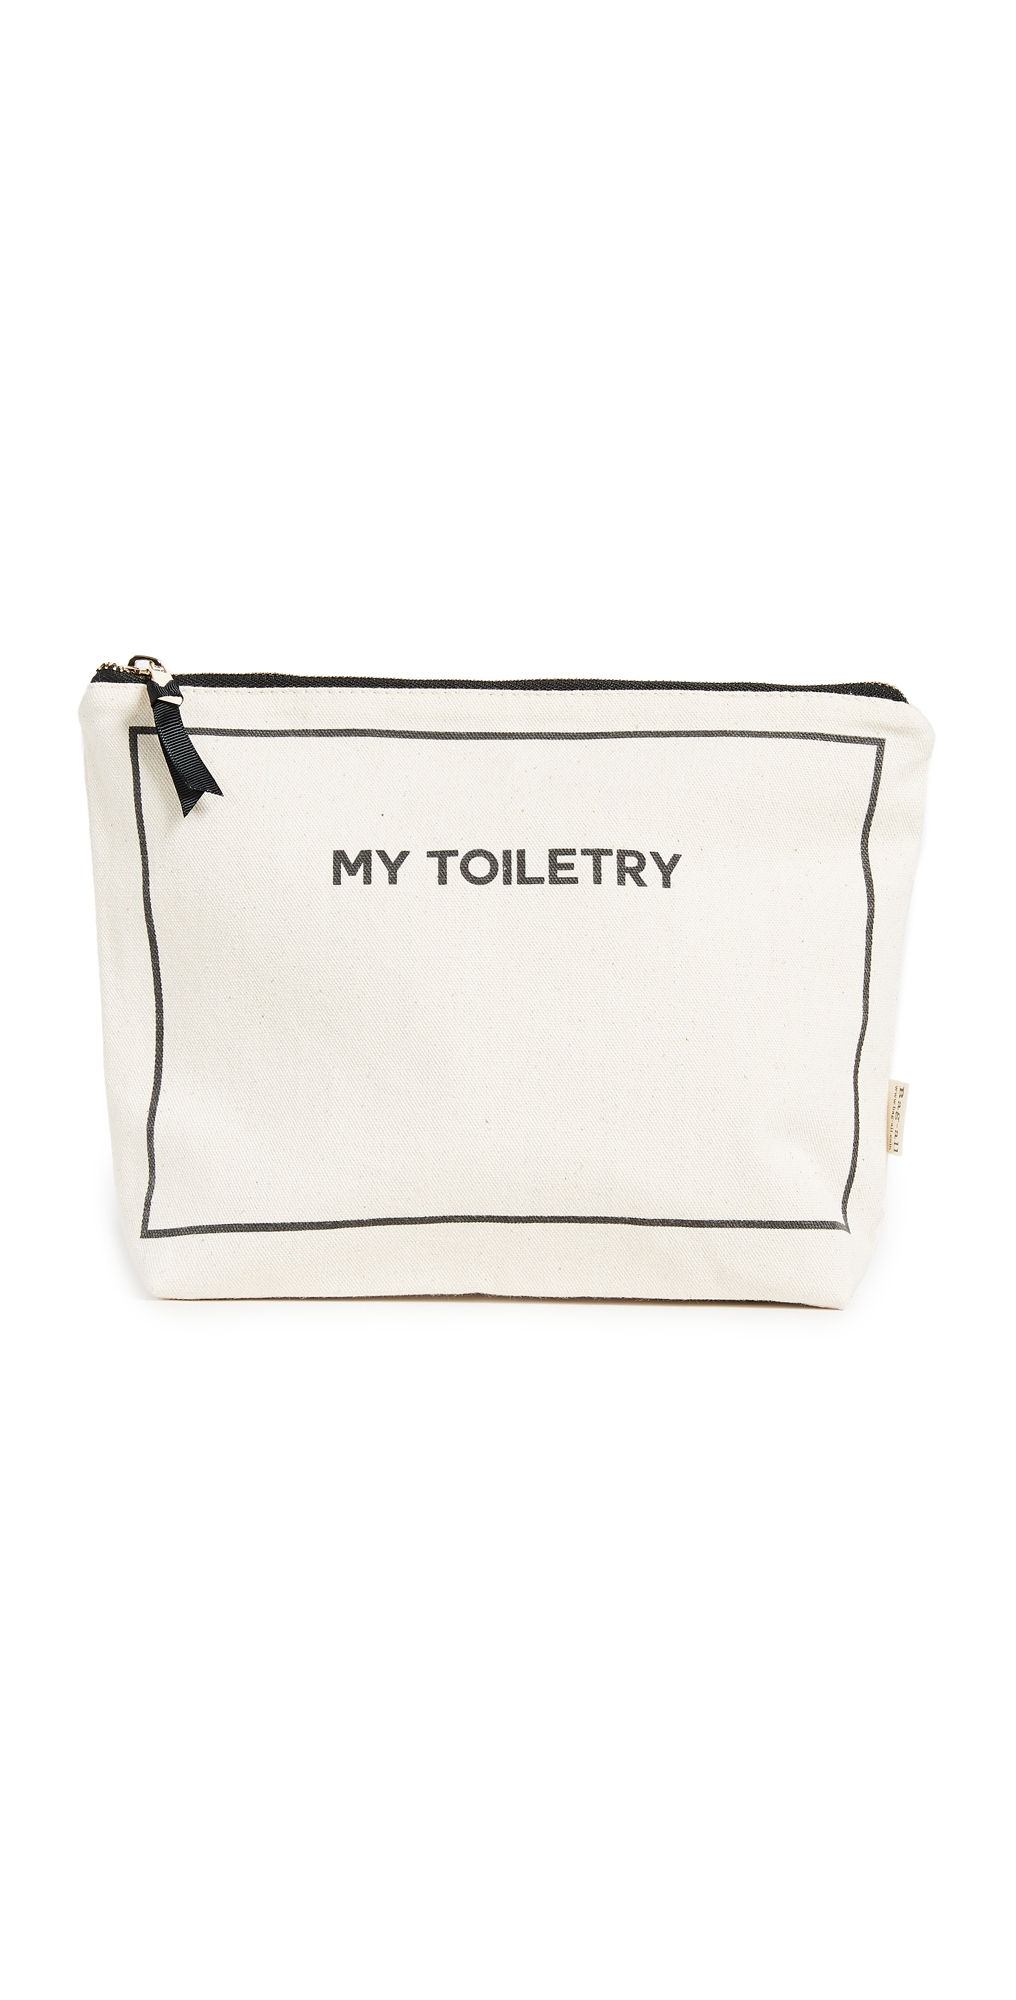 My Toiletry Lined Travel Pouch